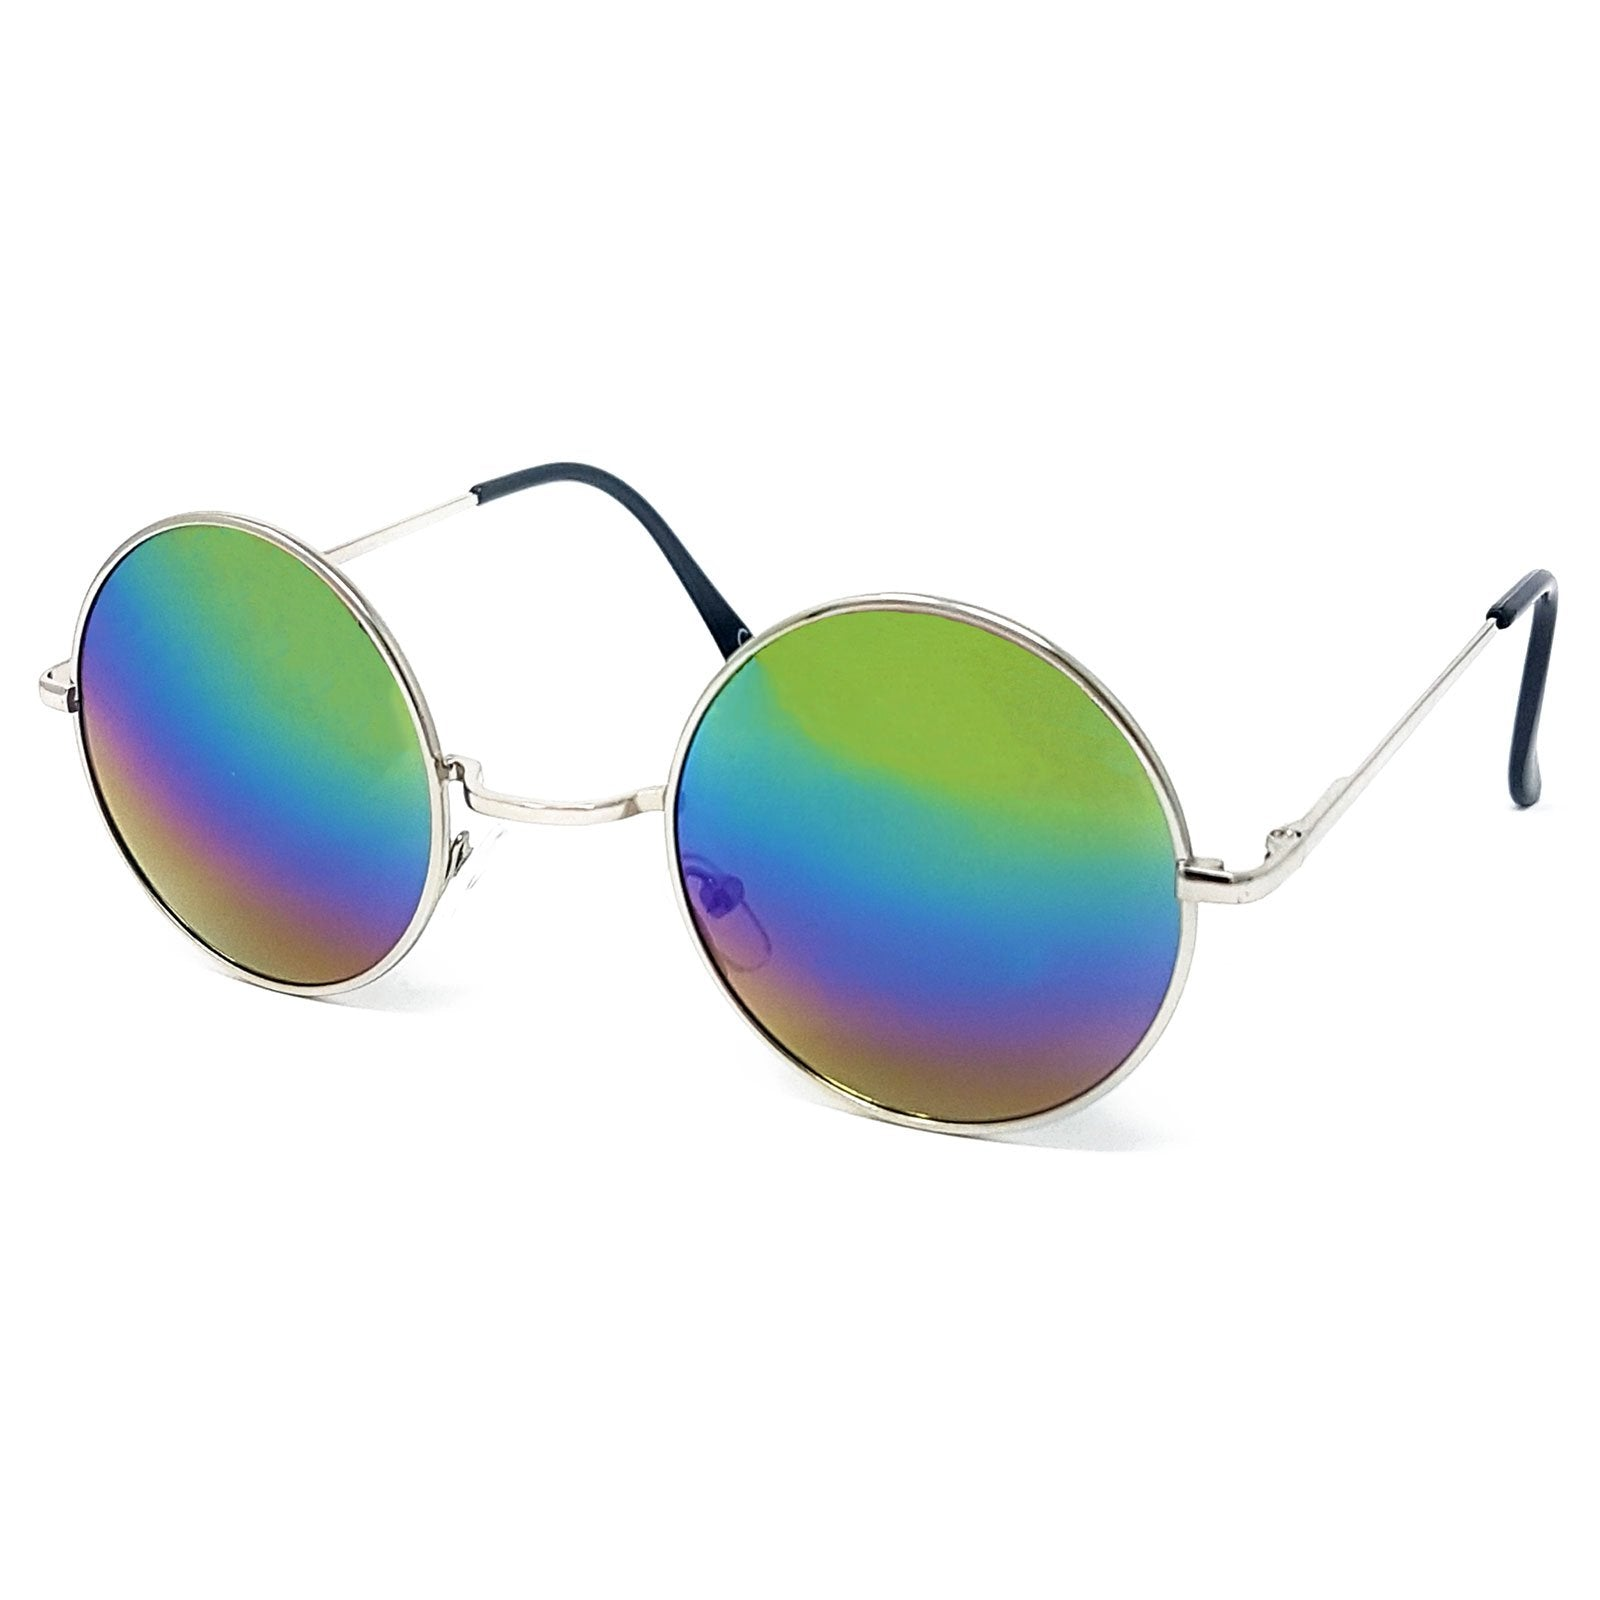 Wholesale Round Lens Sunglasses - Silver Frame, Rainbow Mirrored Lens